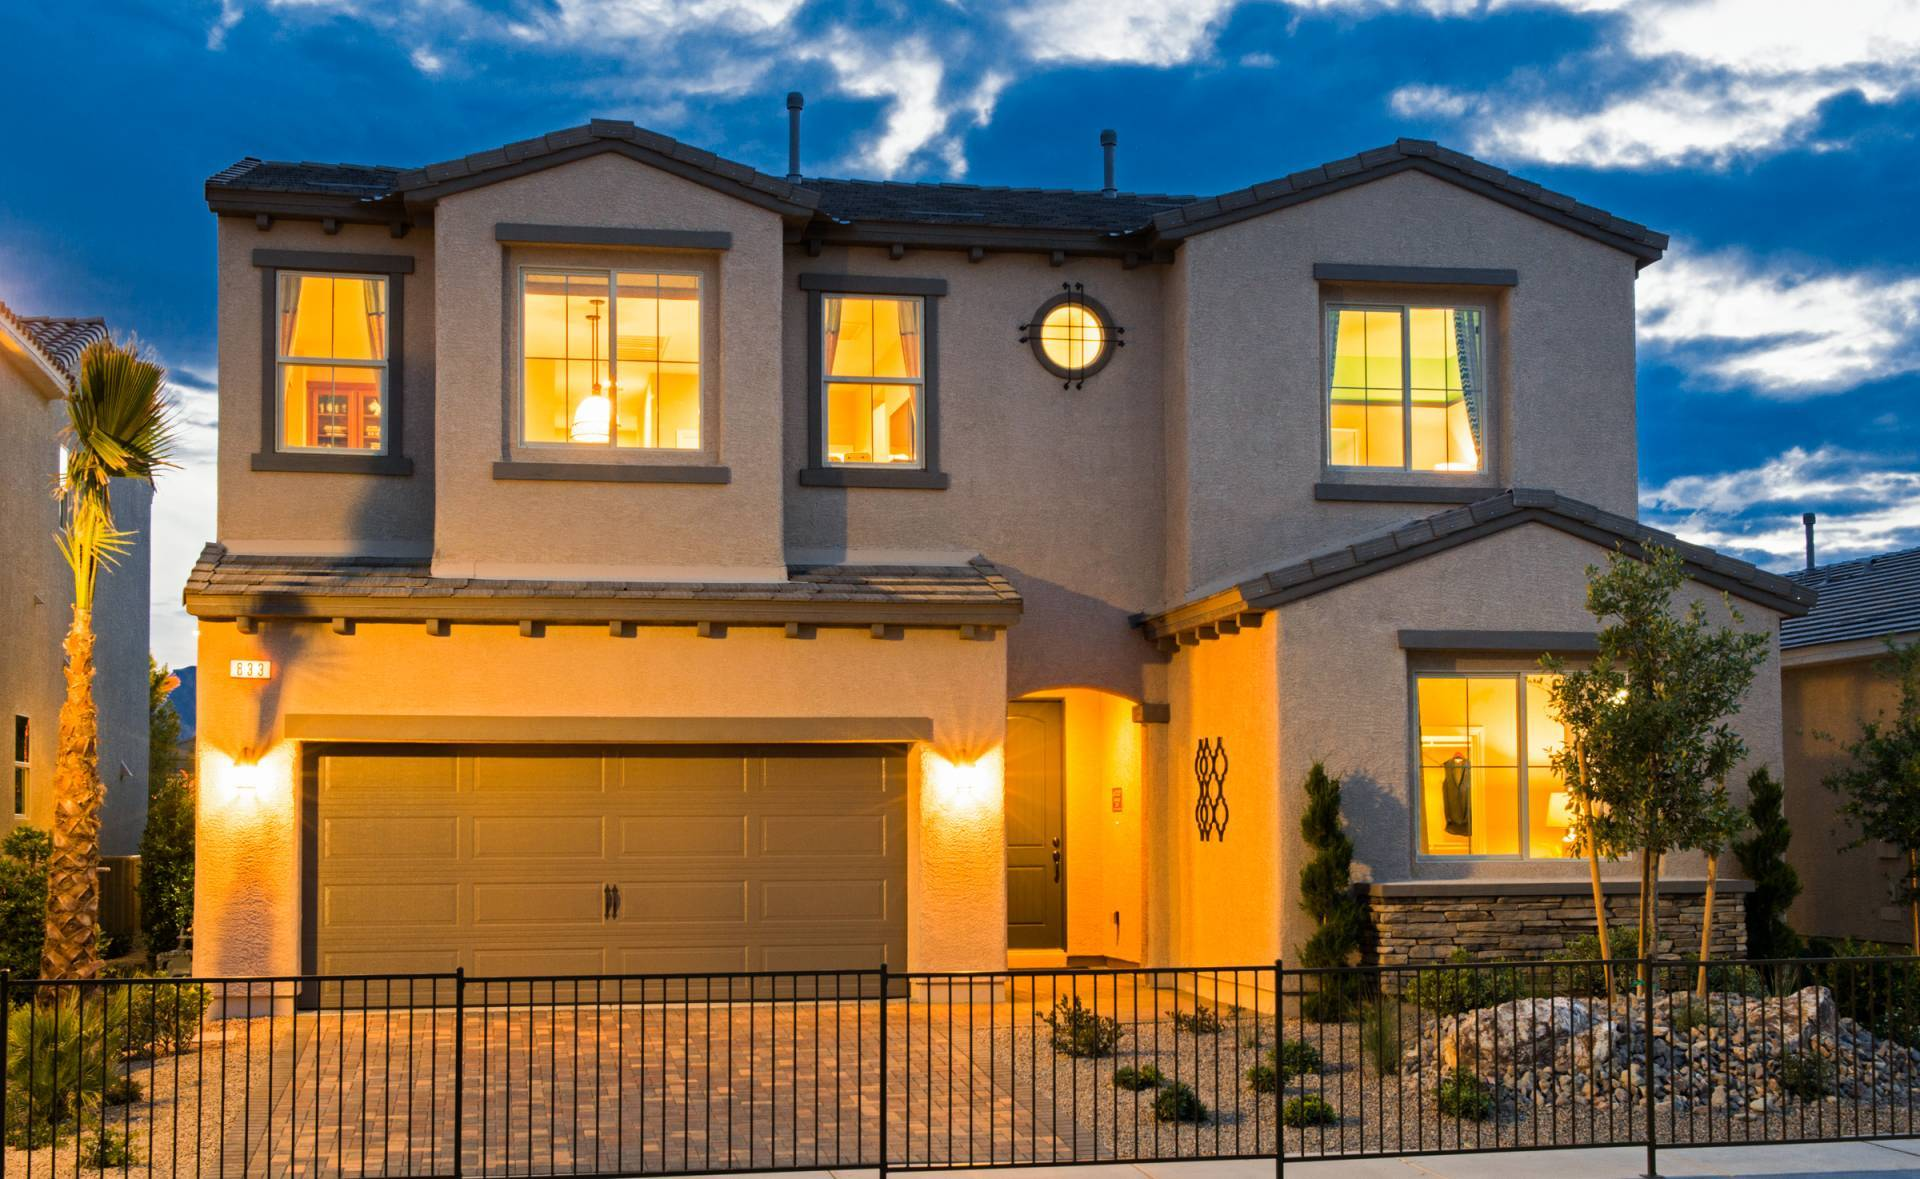 New luxury homes in las vegas nv newhomesource for Las vegas home source